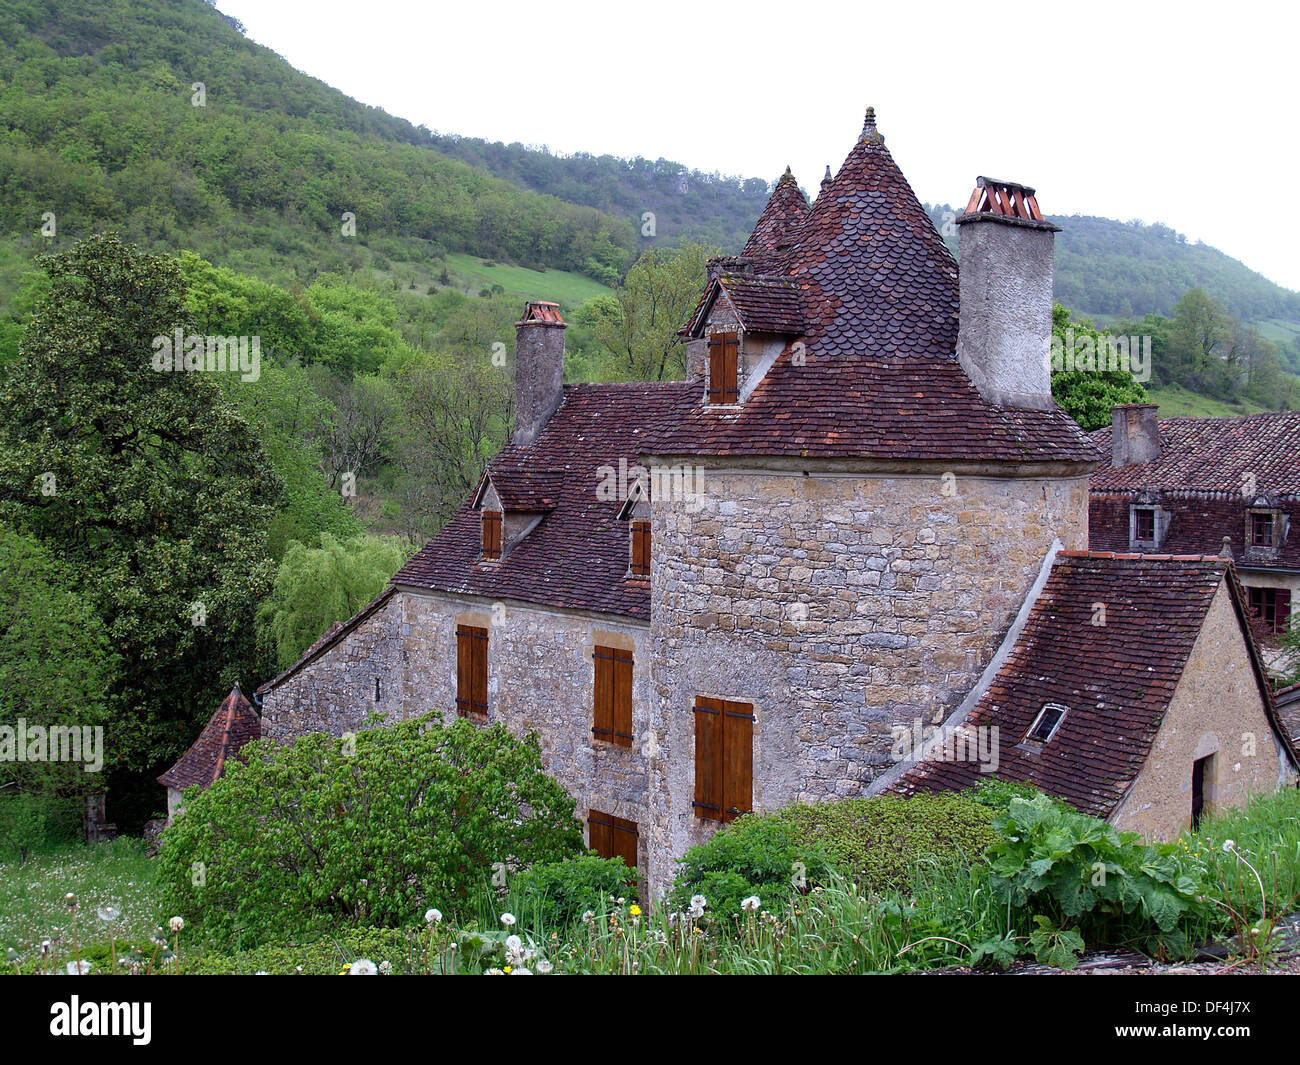 The prettiest village of Autoire,France - Stock Image